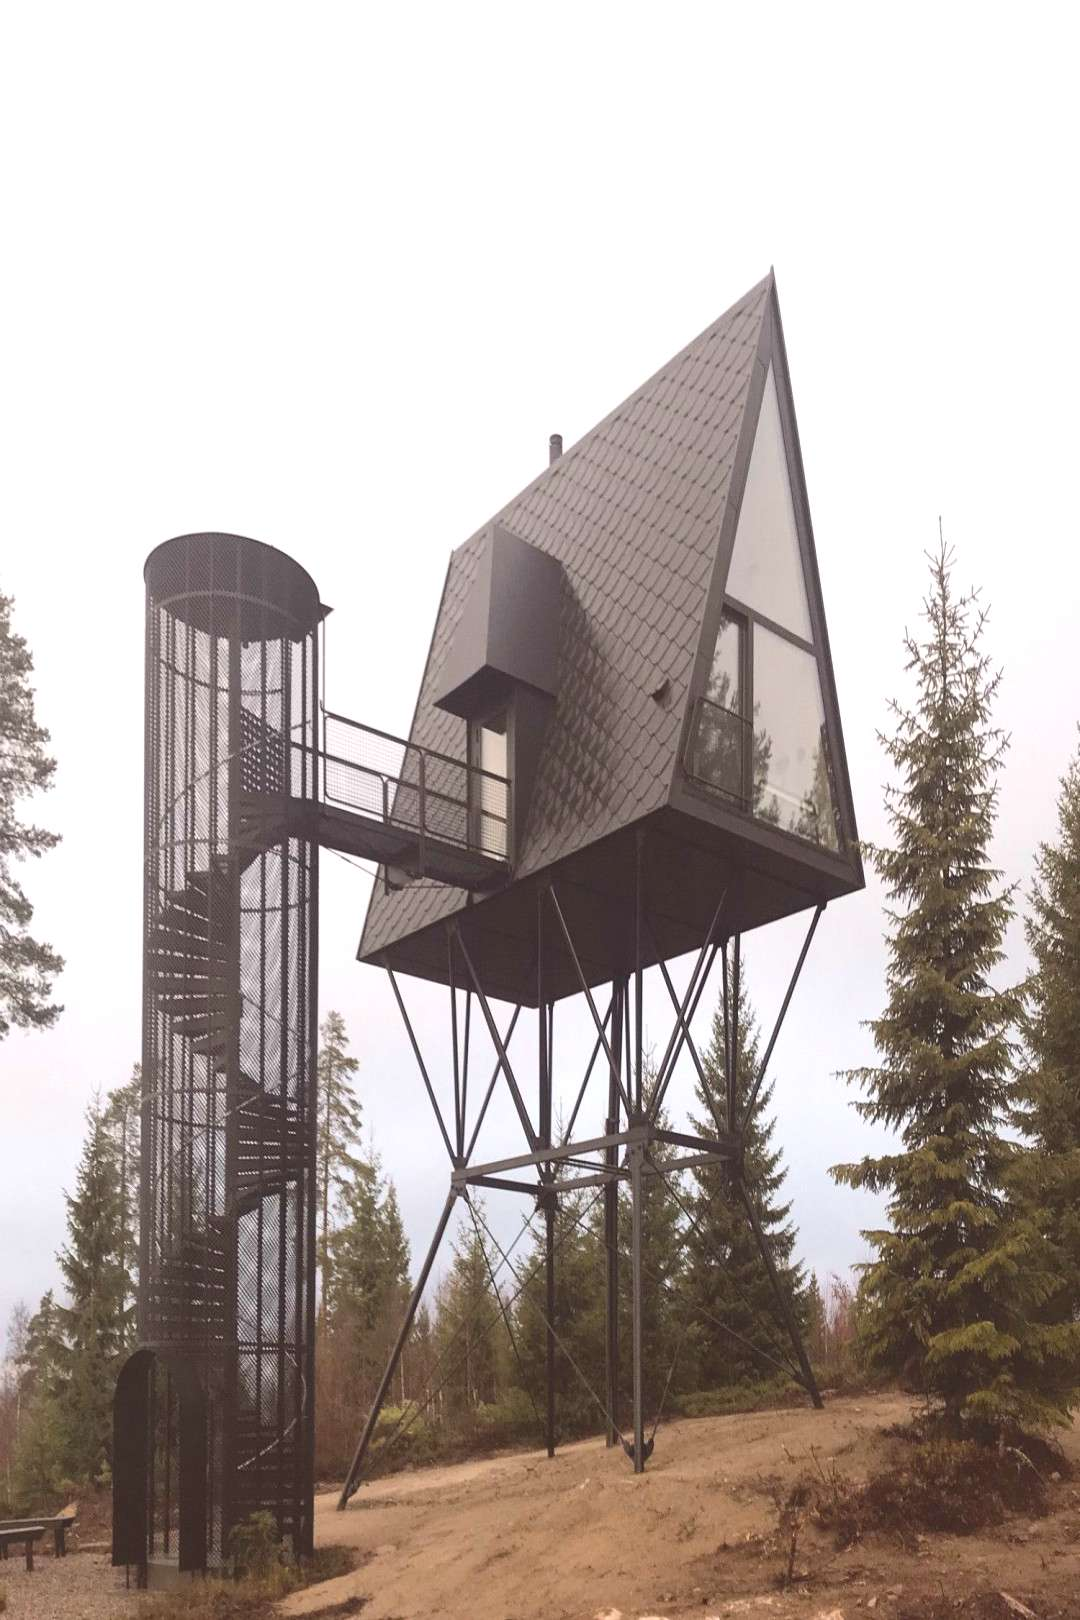 Lookout in the Moomin Forest - tree houses by Espen Suvernik in Norway Lookout in the Moomin Forest